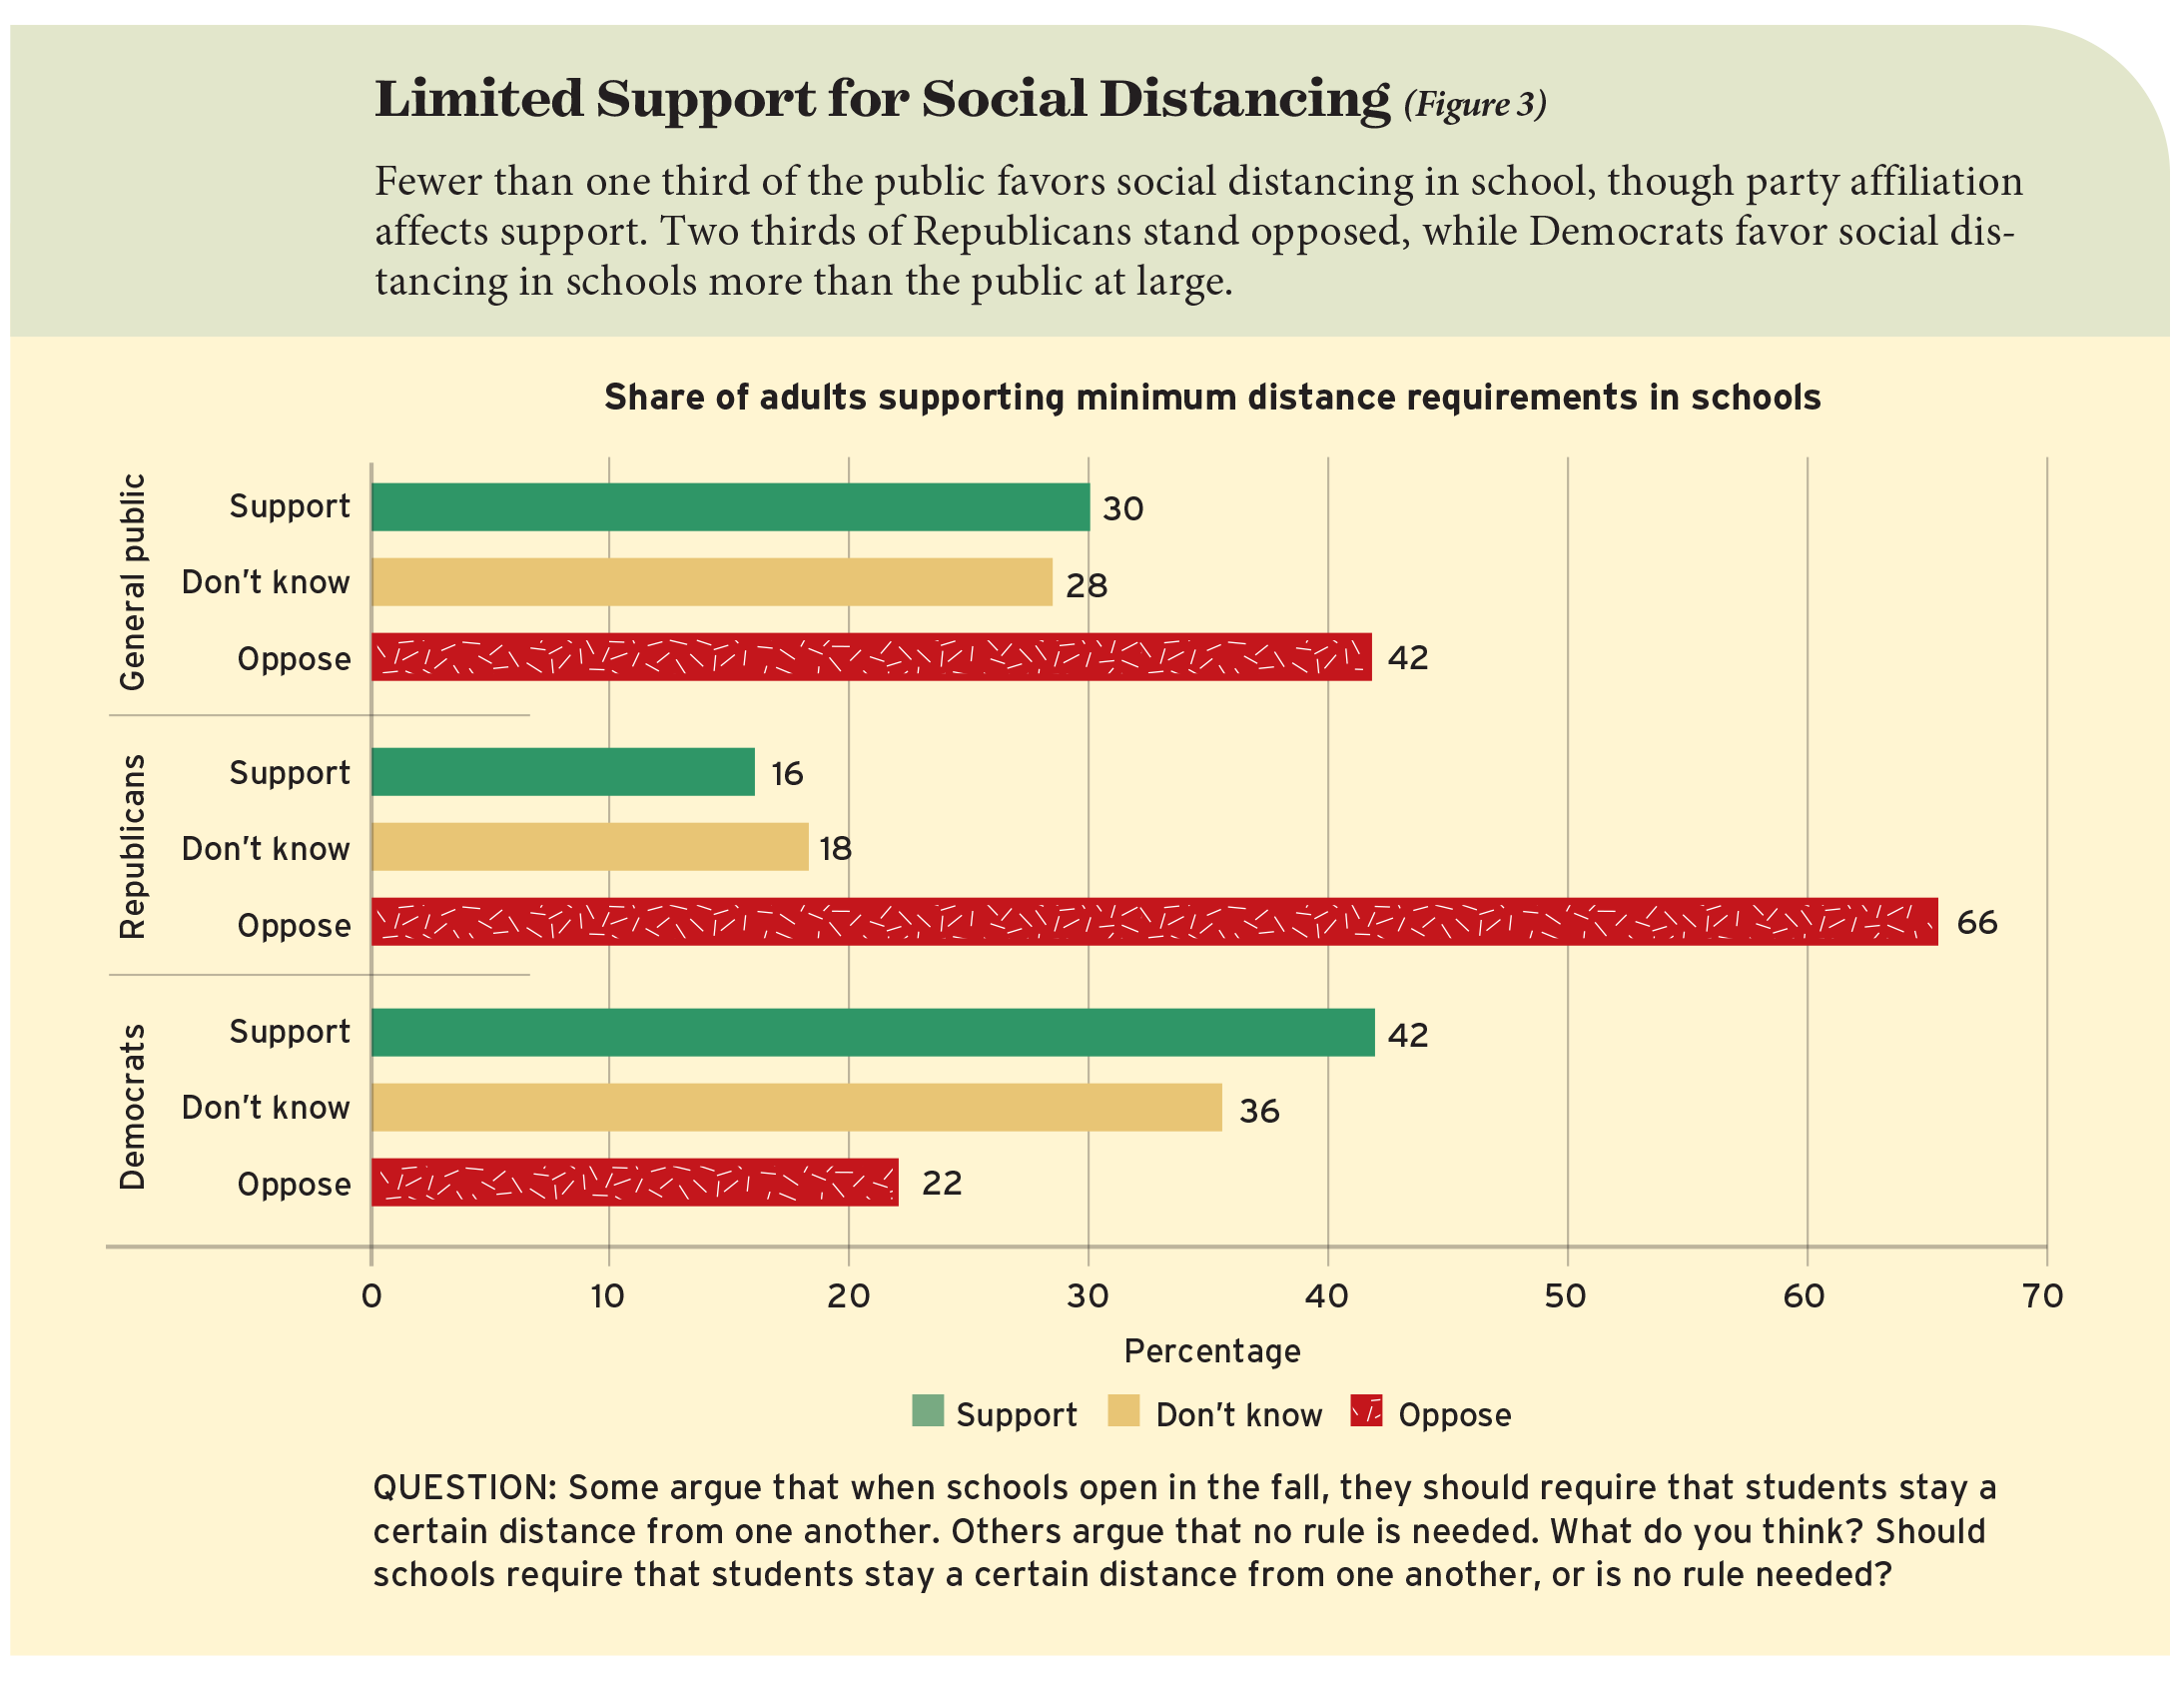 Limited Support for Social Distancing (Figure 3)